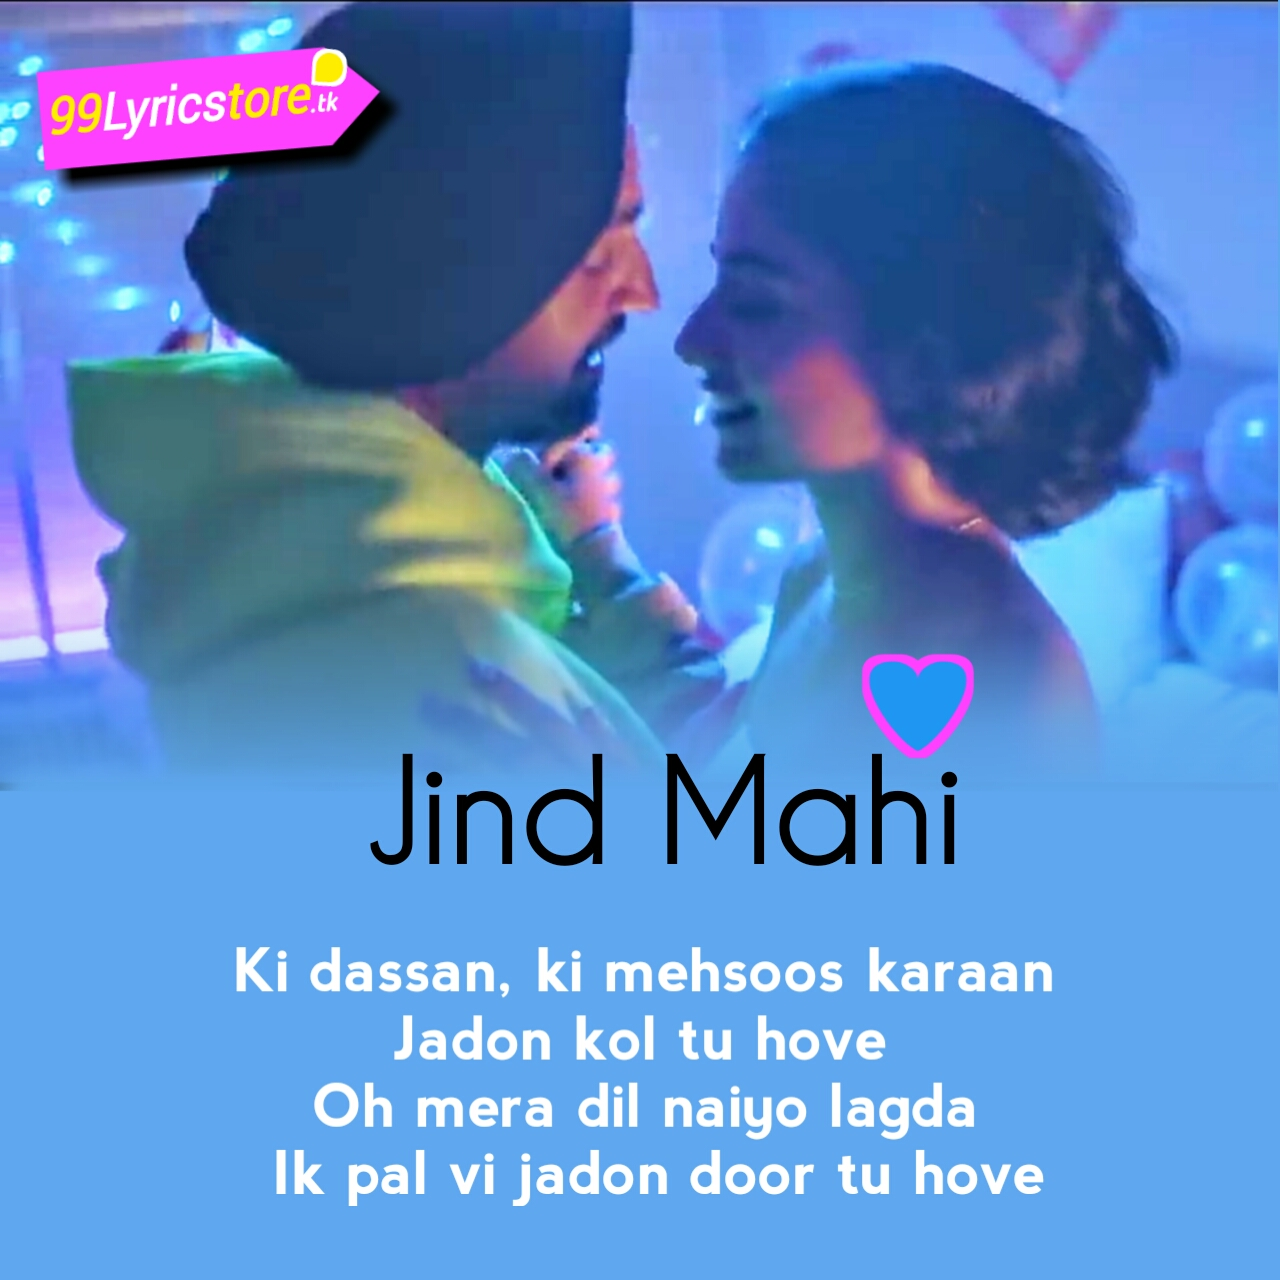 Latest Punjabi Song Lyrics, Latest Diljit Dosanjh Song Lyrics,